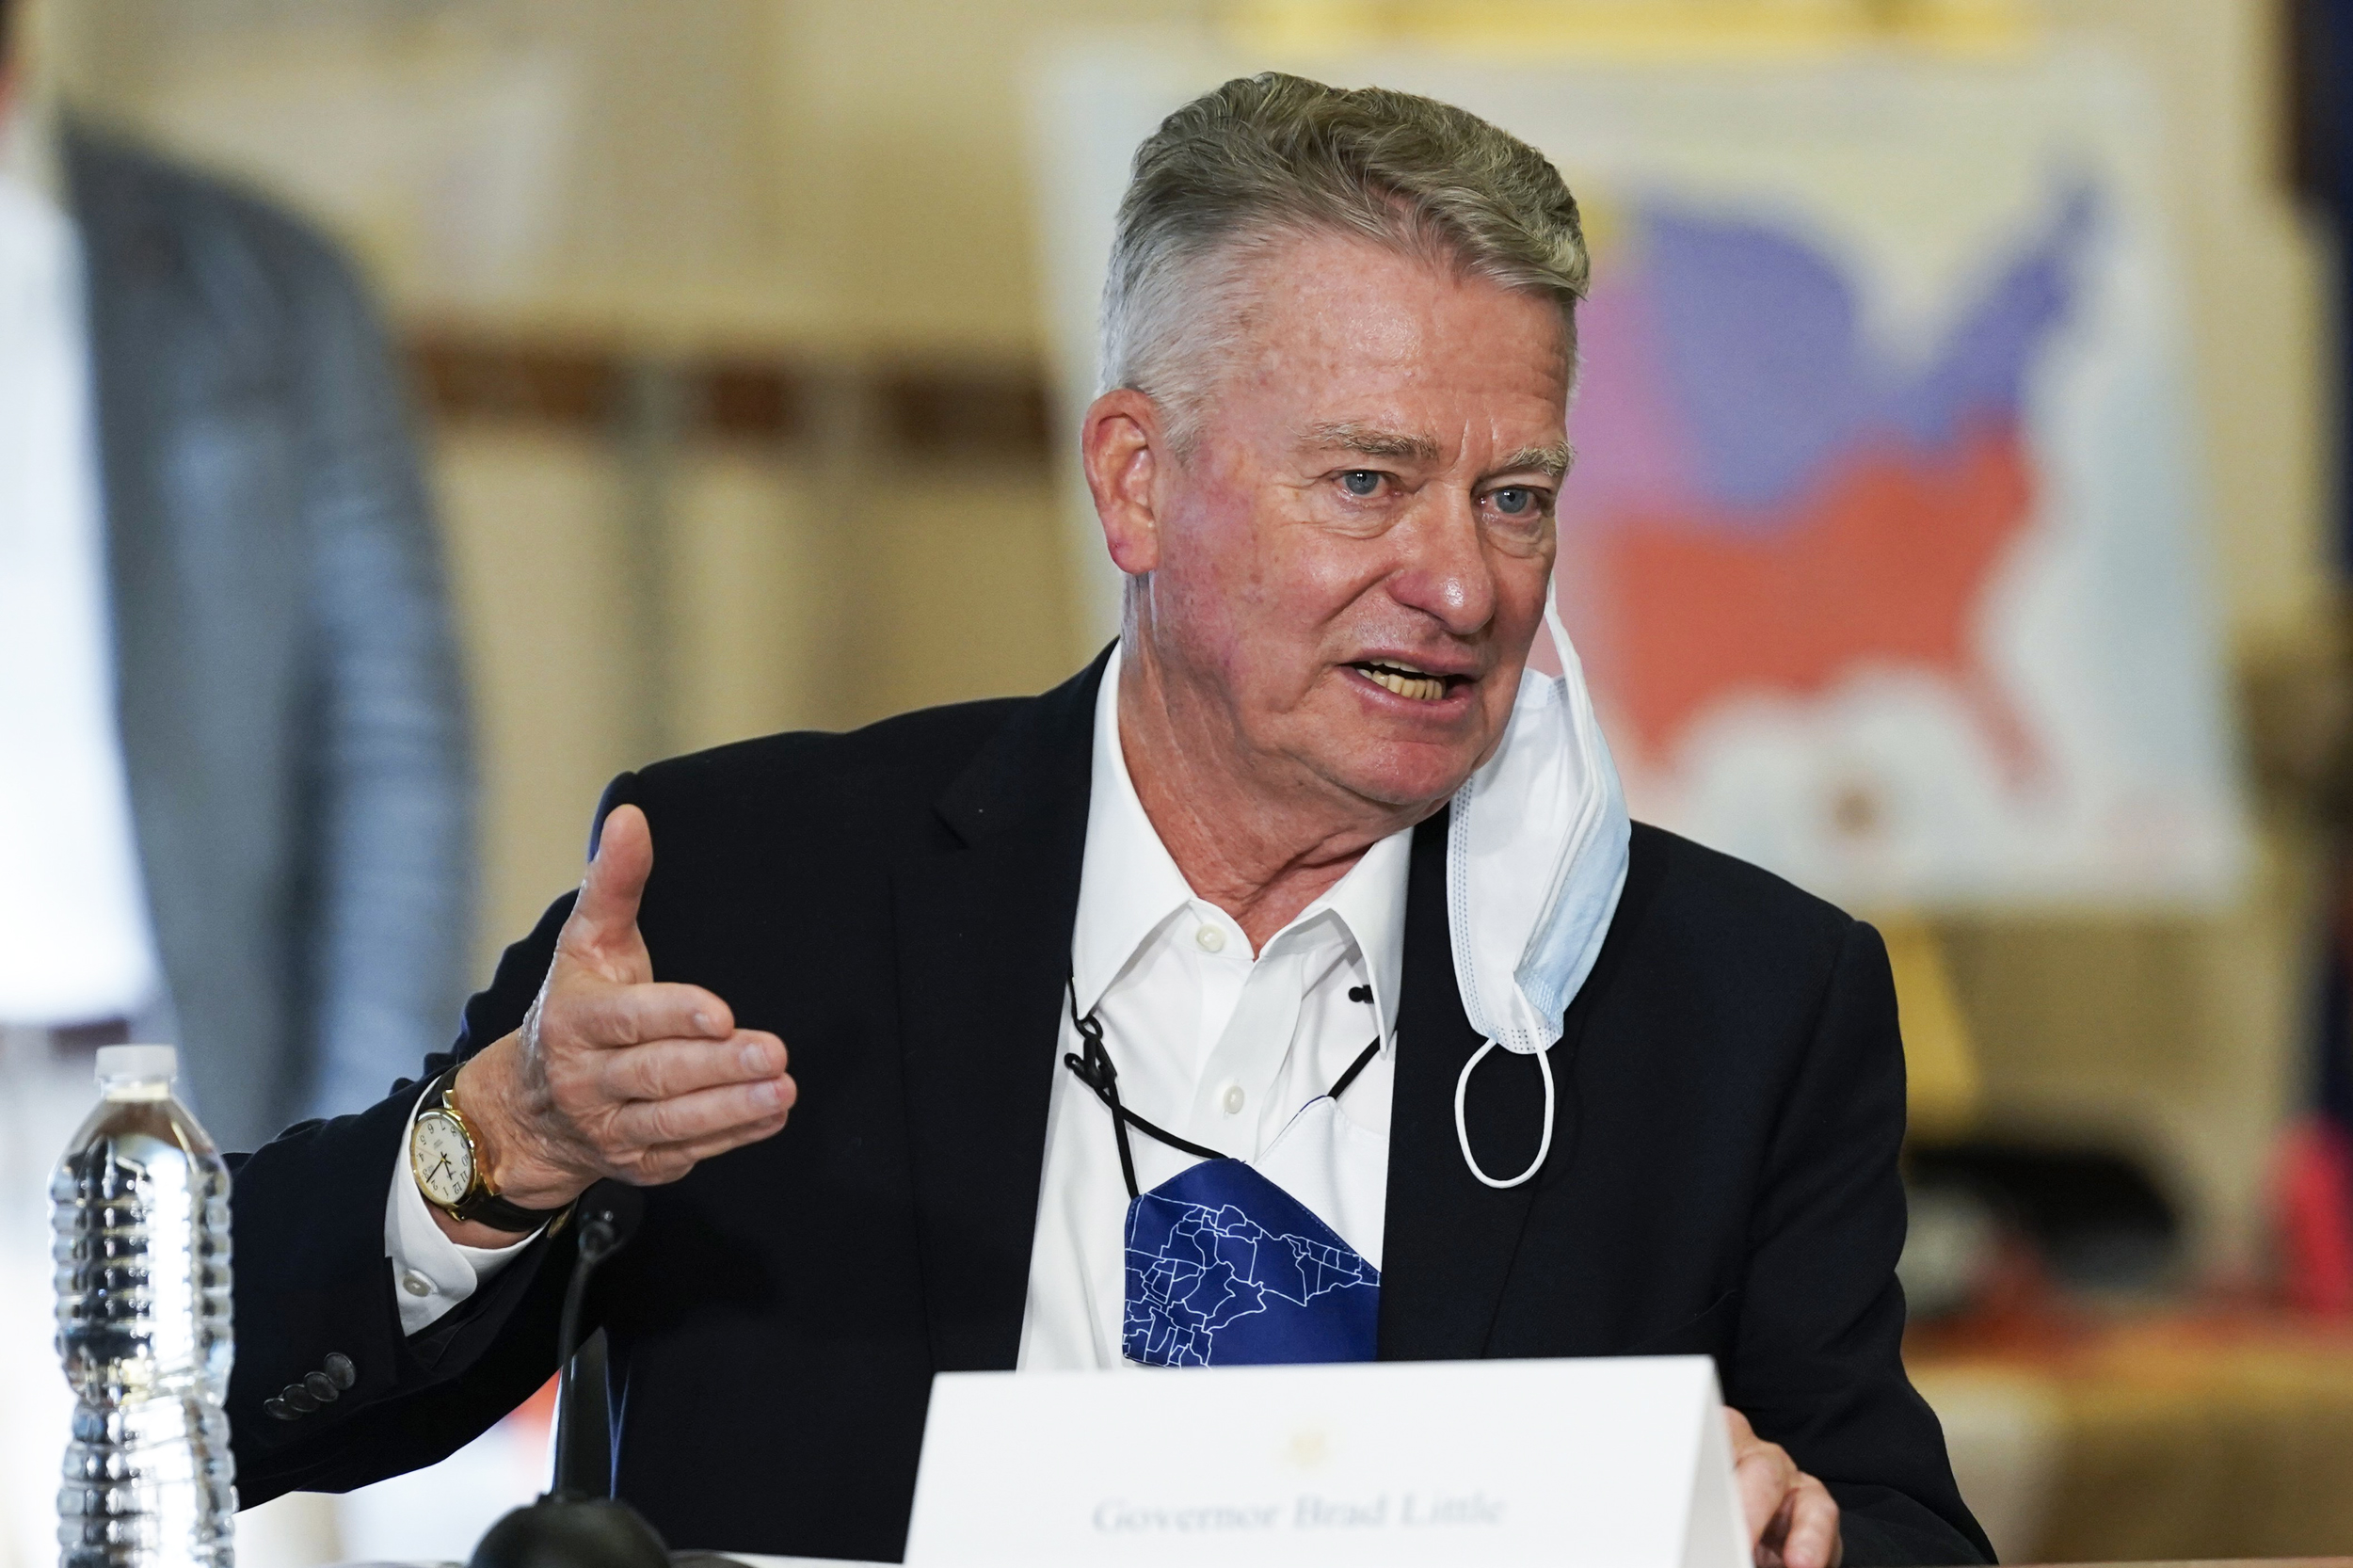 Idaho lt. governor issues 'vaccine passport' order while governor is out of state